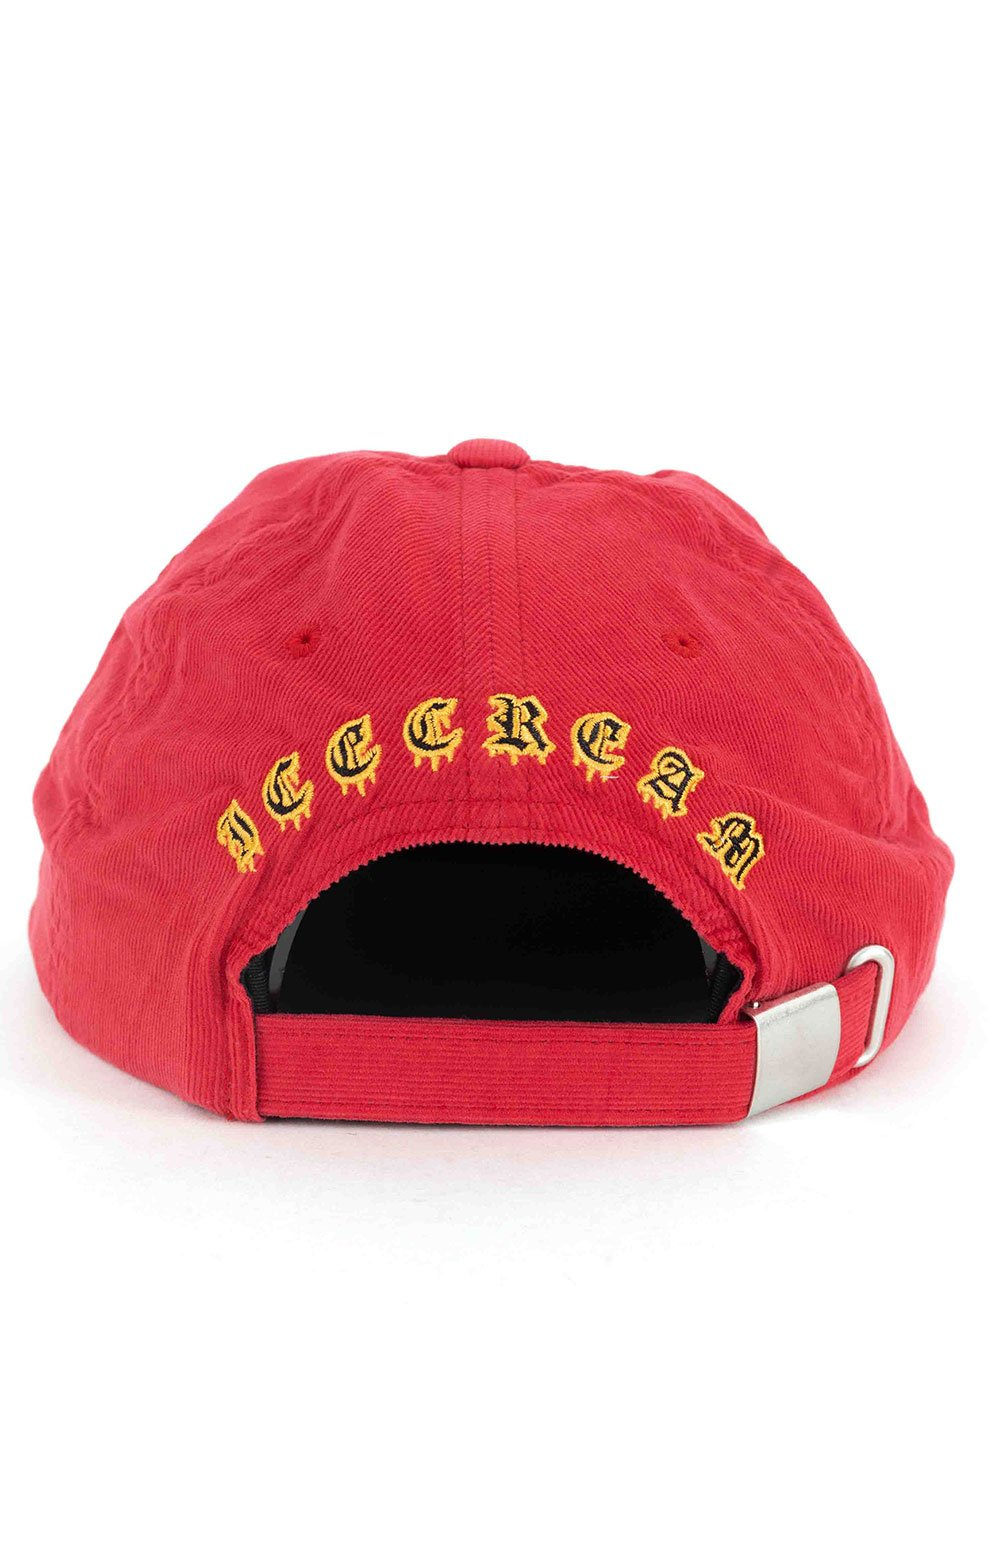 Eye See Tiger Polo Hat - Tango Red 3